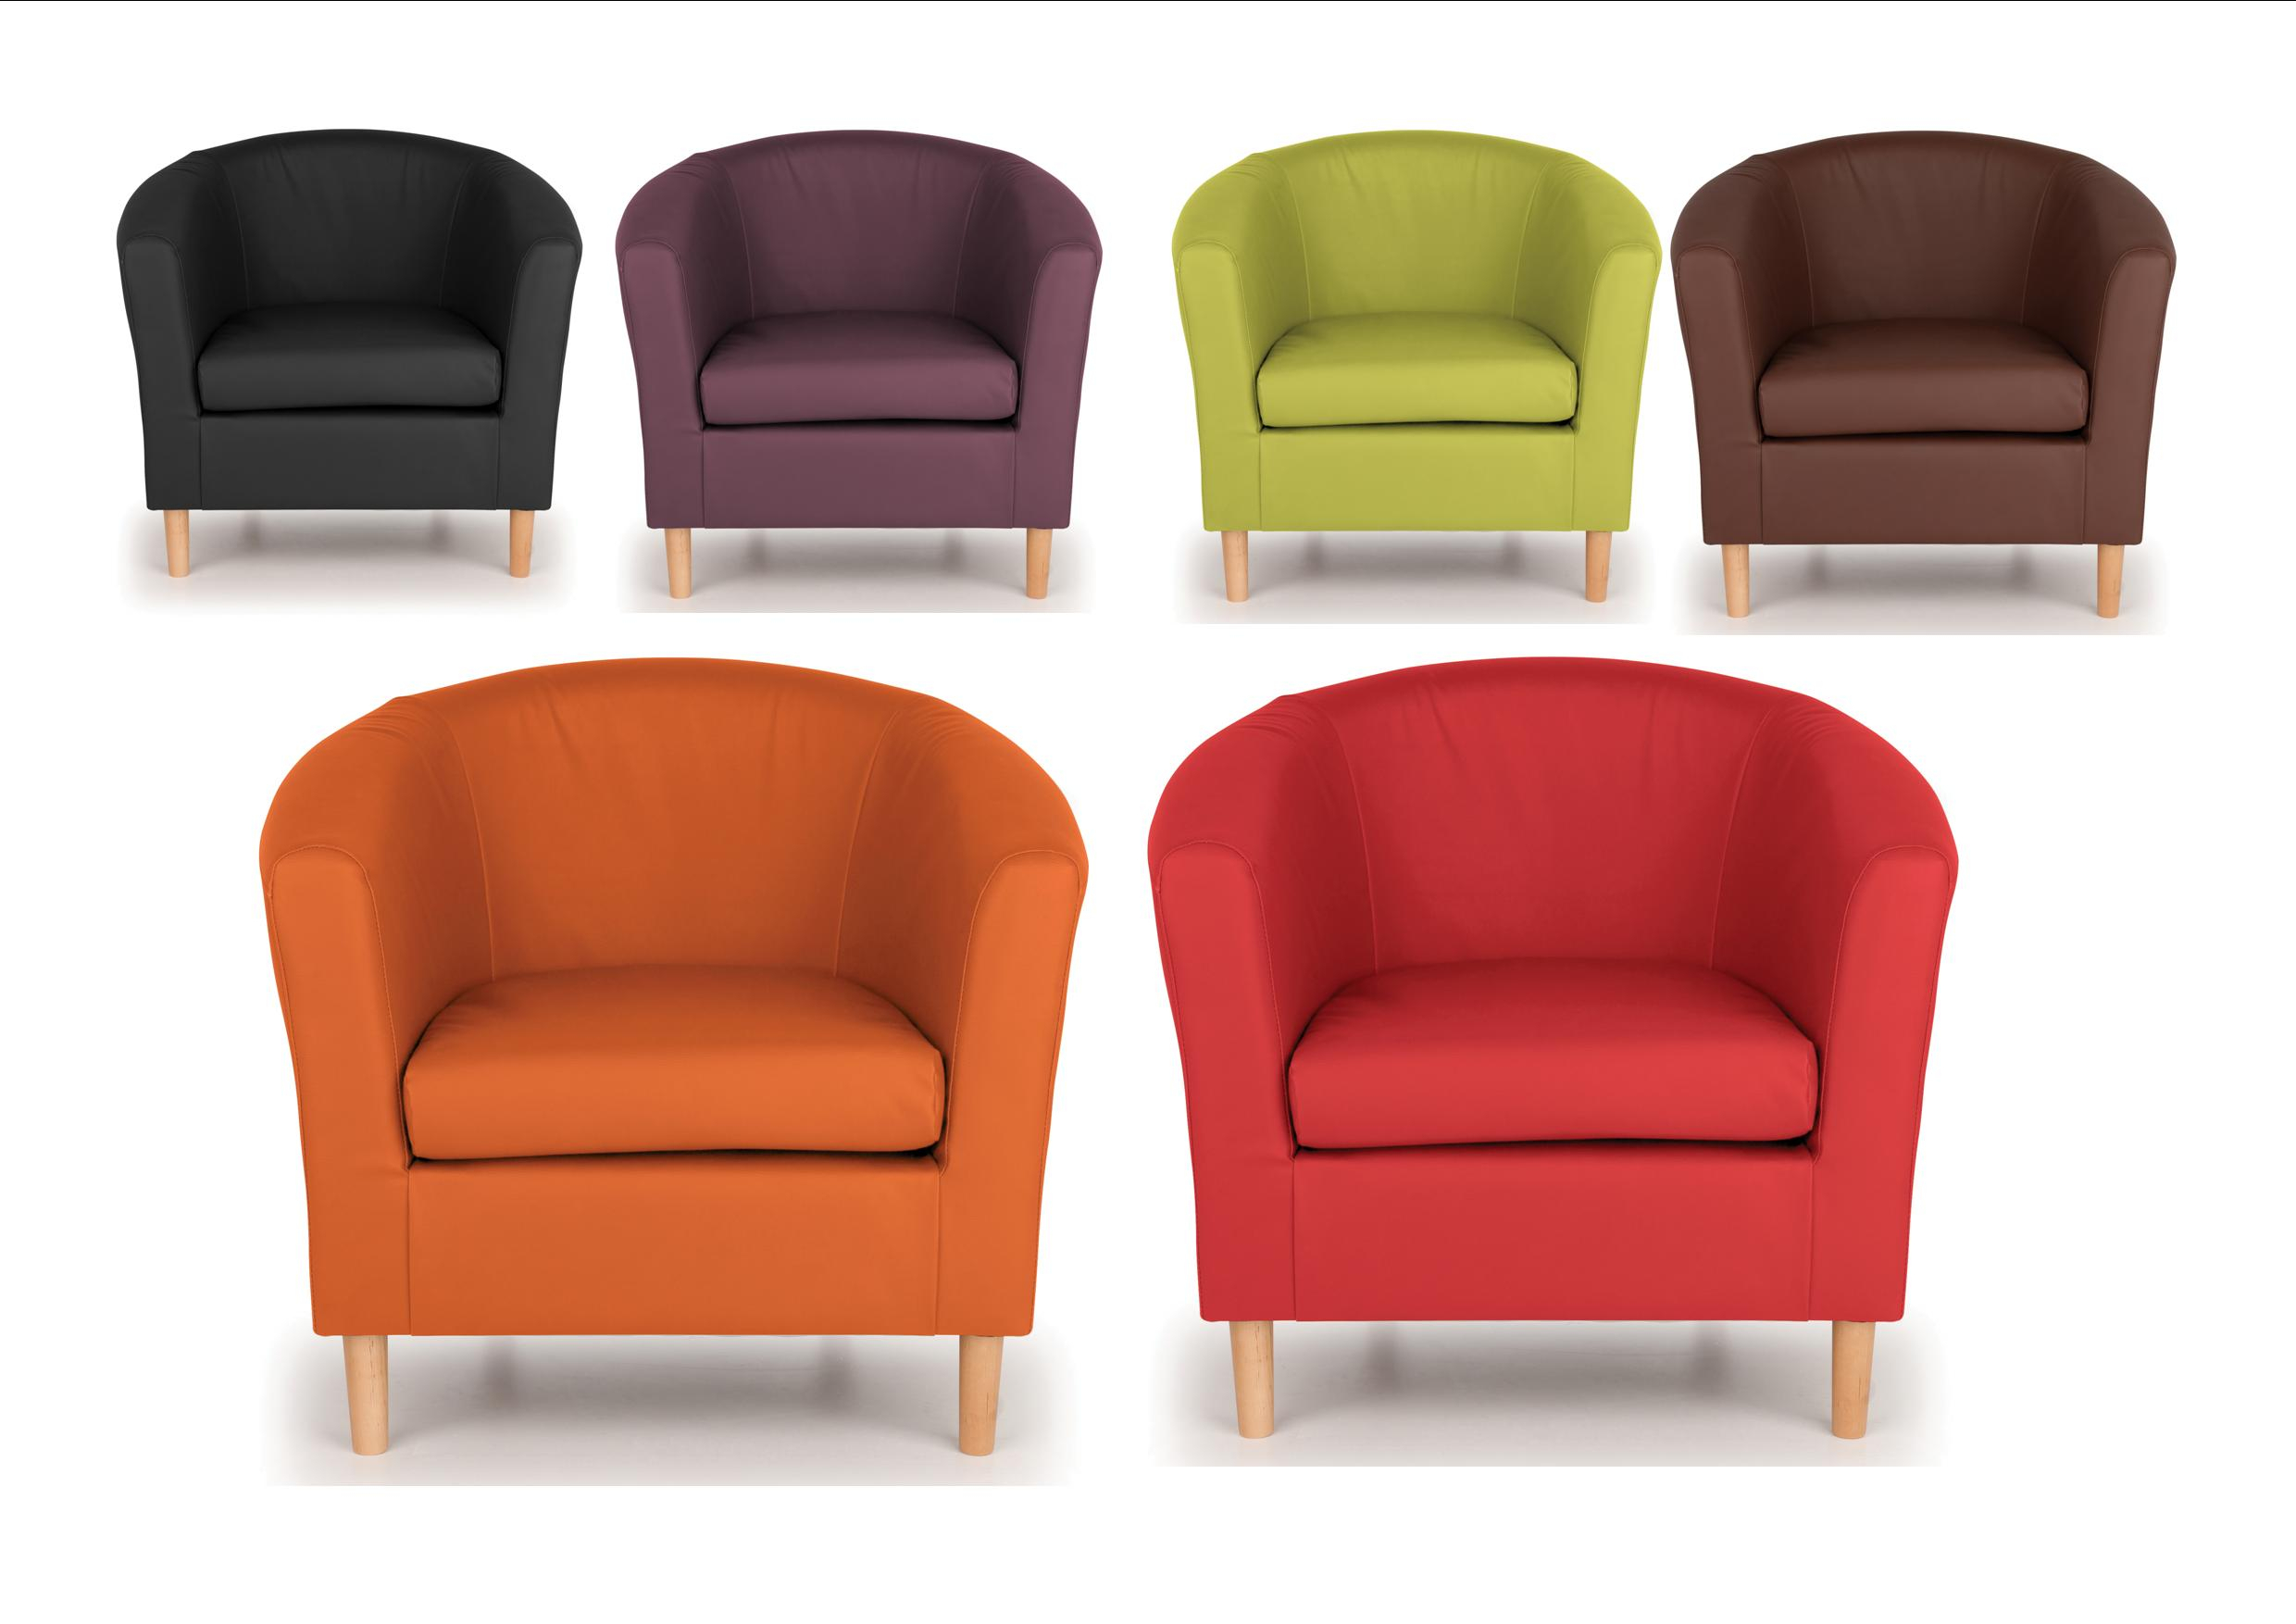 Details About Nicole Tub Chairs – Brown, Black Lime, Orange, Plum, Red –  Modern Design Intended For Montenegro Faux Leather Club Chairs (View 8 of 15)